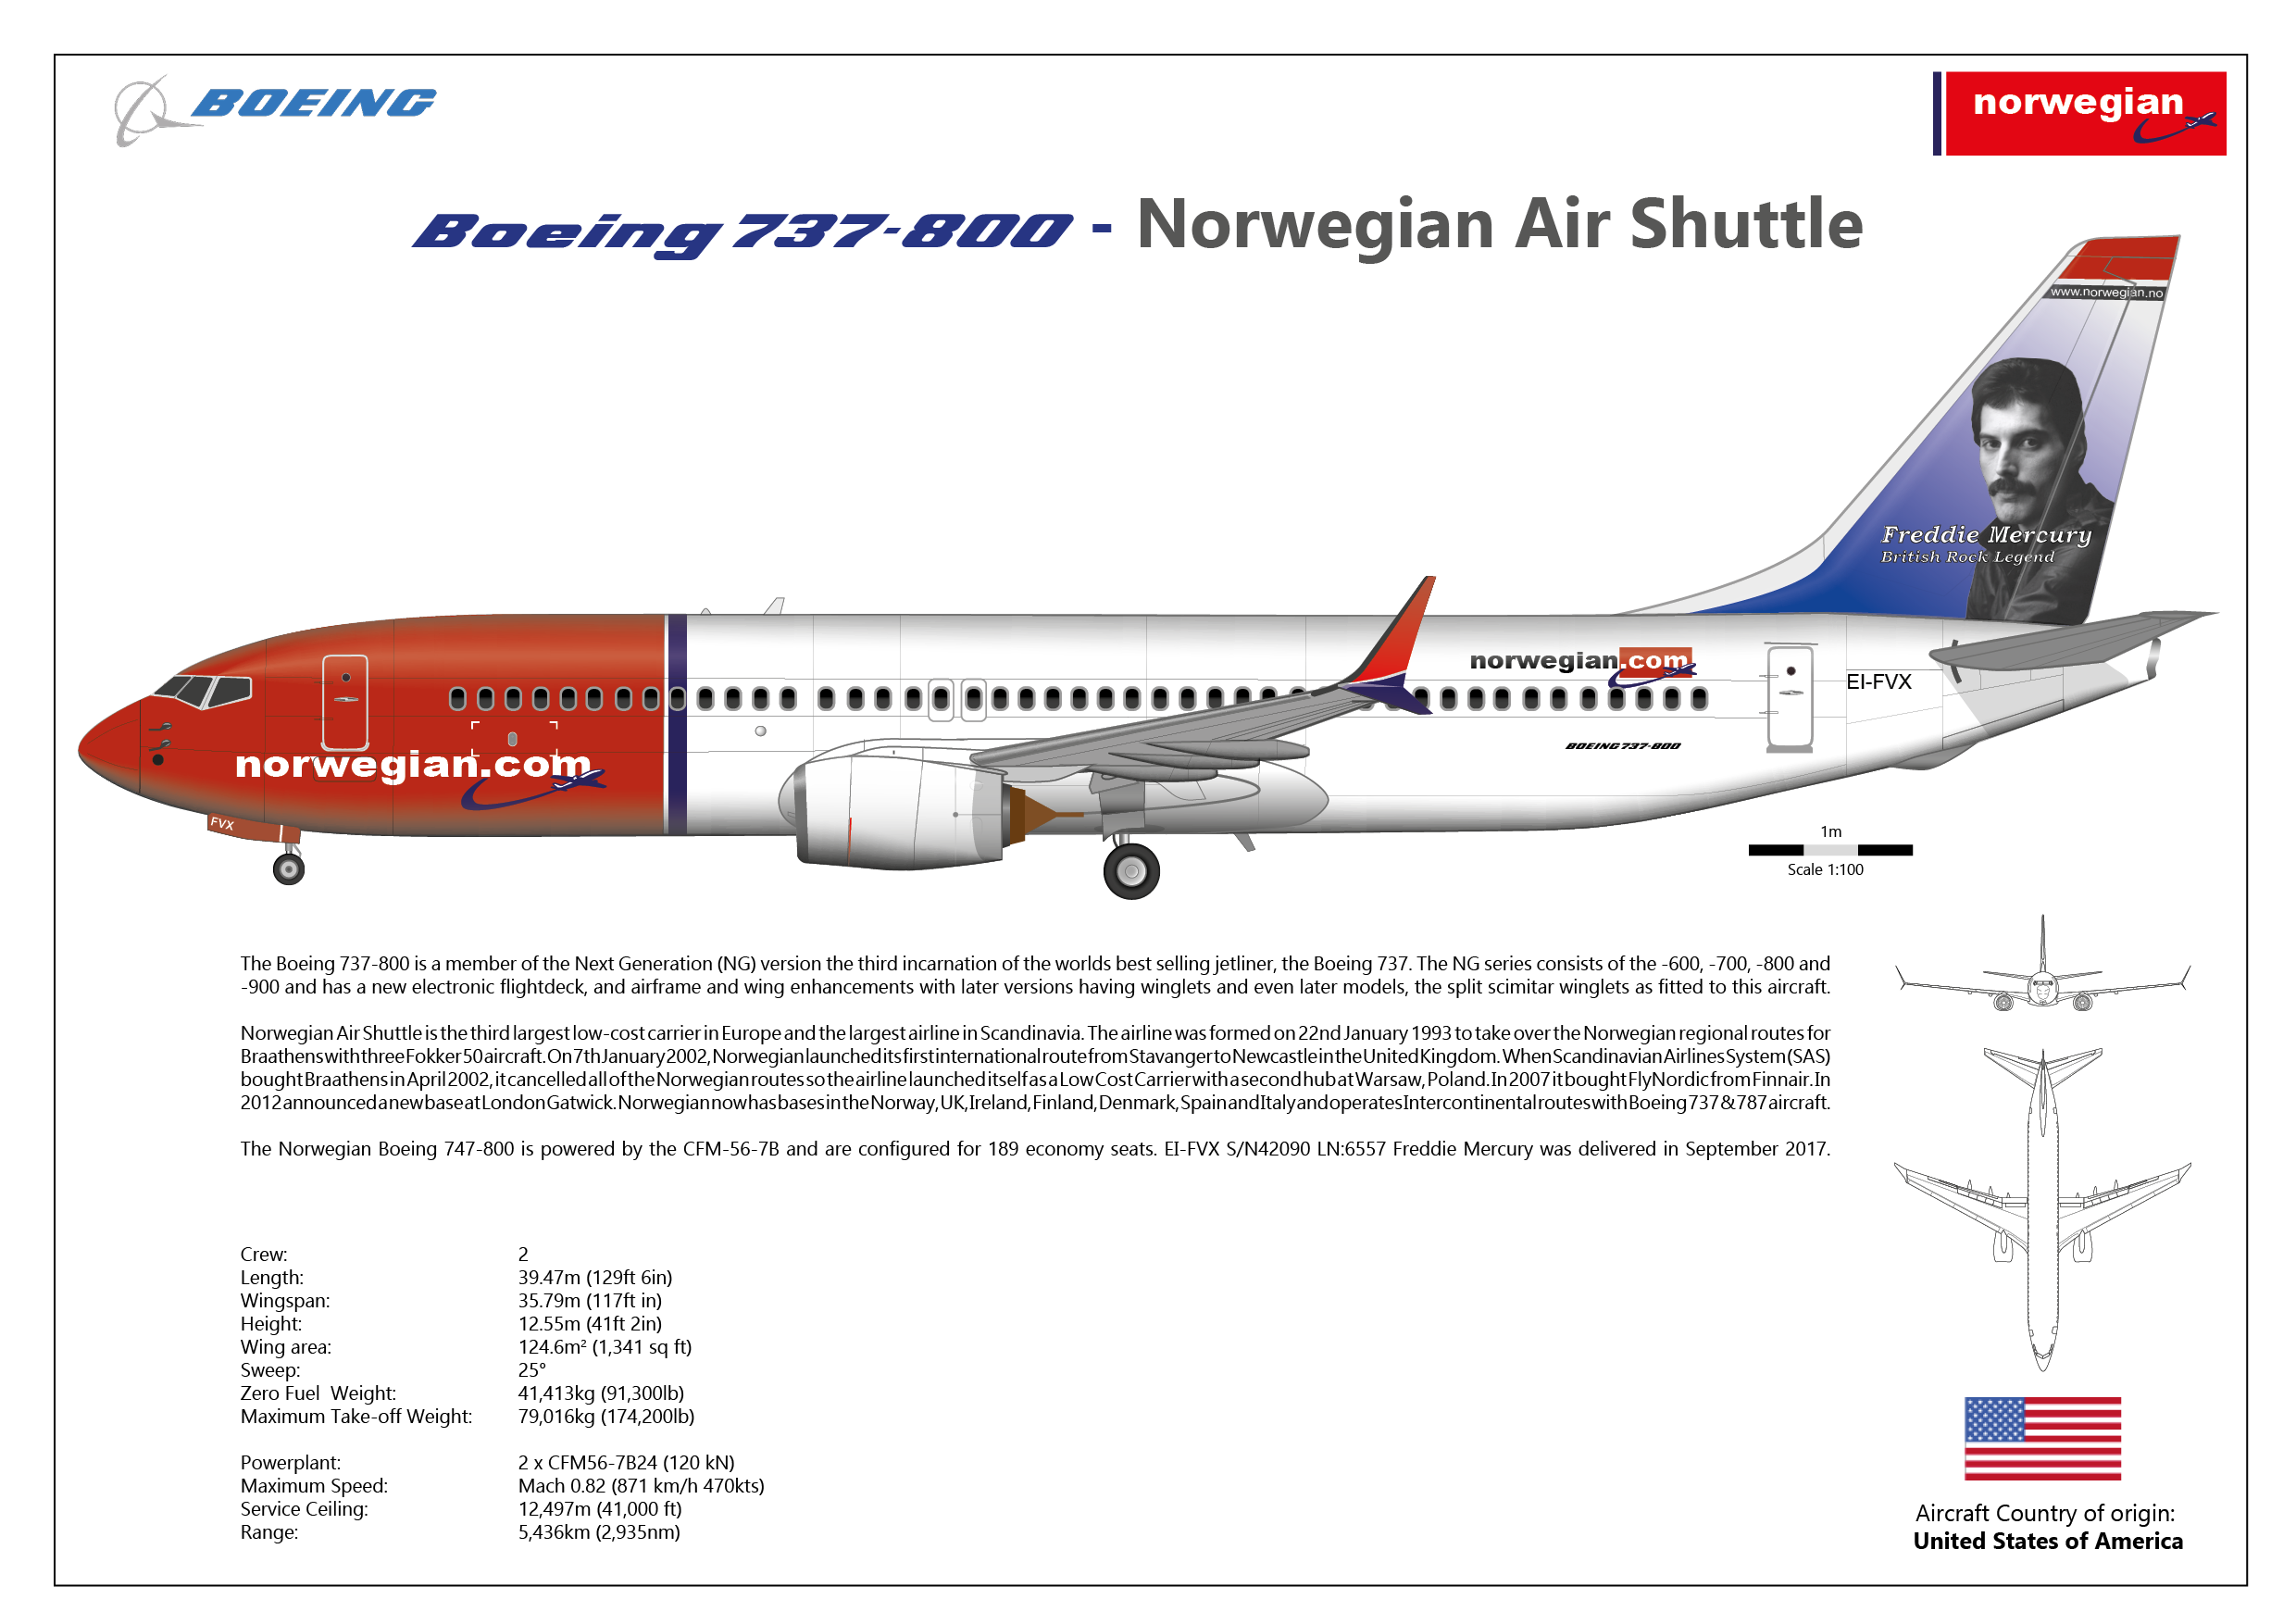 Norwegian Airlines Boeing B737-800 Freddie Mercury Livery Illustration Print